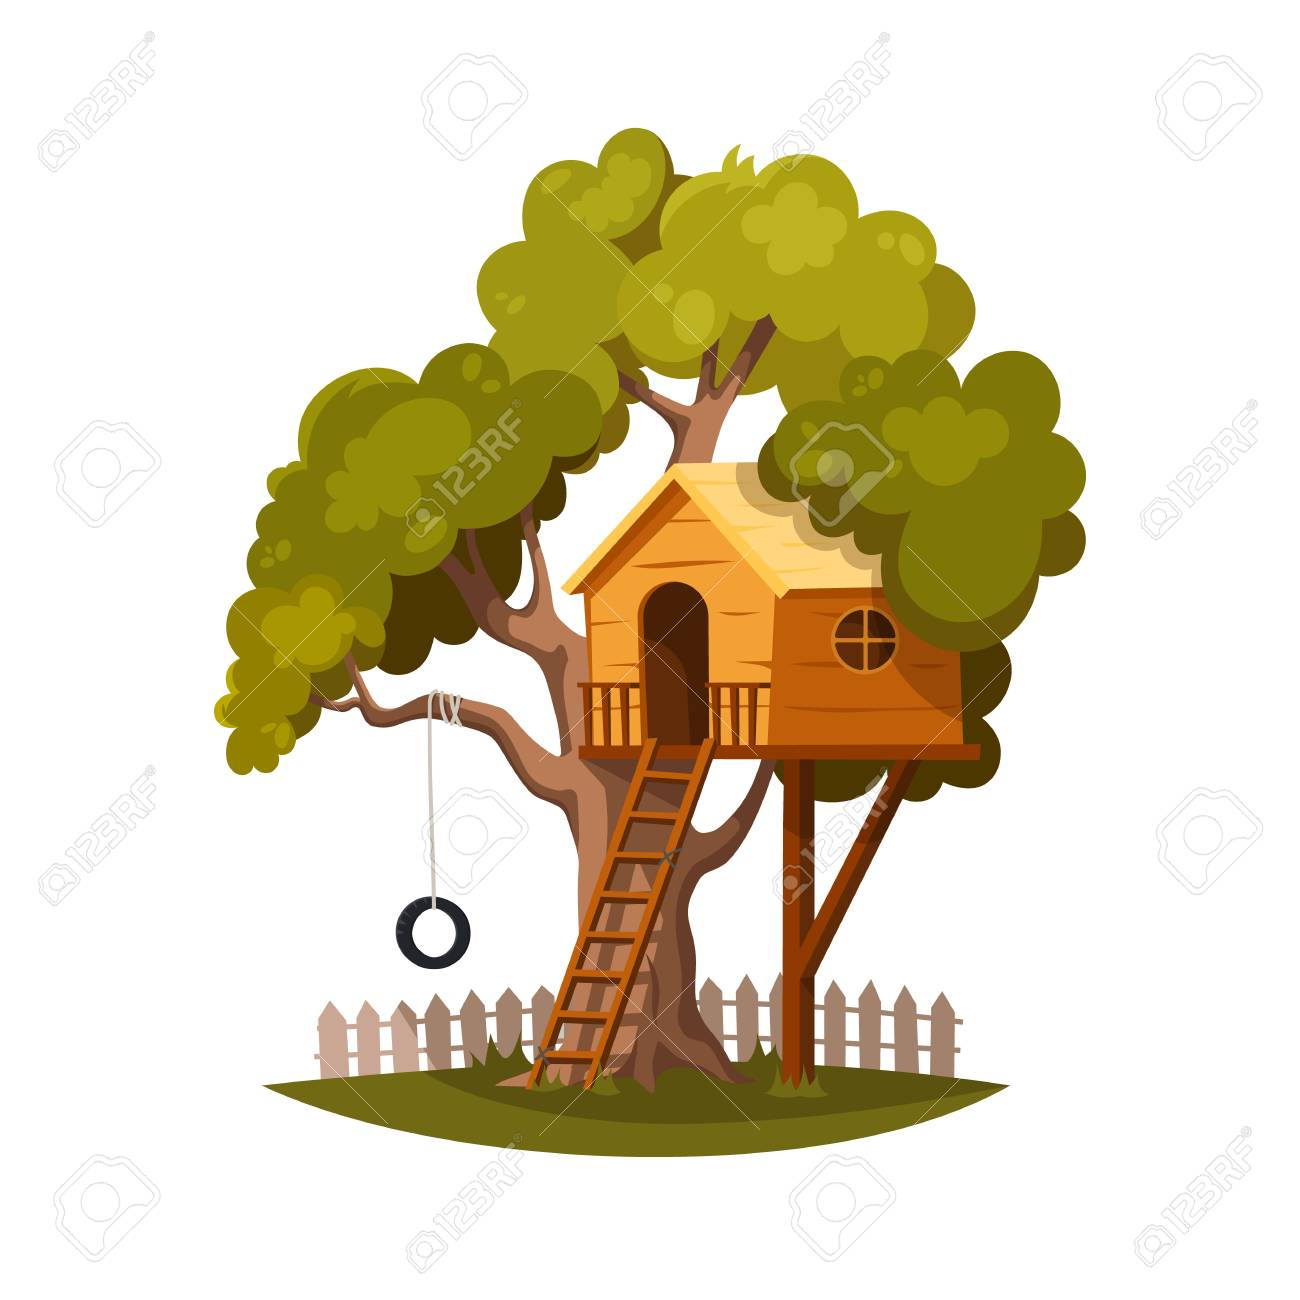 Tree House For Playing And Joyful Children House On Tree For Royalty Free Cliparts Vectors And Stock Illustration Image 103256760 Subscribe to treehouse direct for new clips, episodes. tree house for playing and joyful children house on tree for